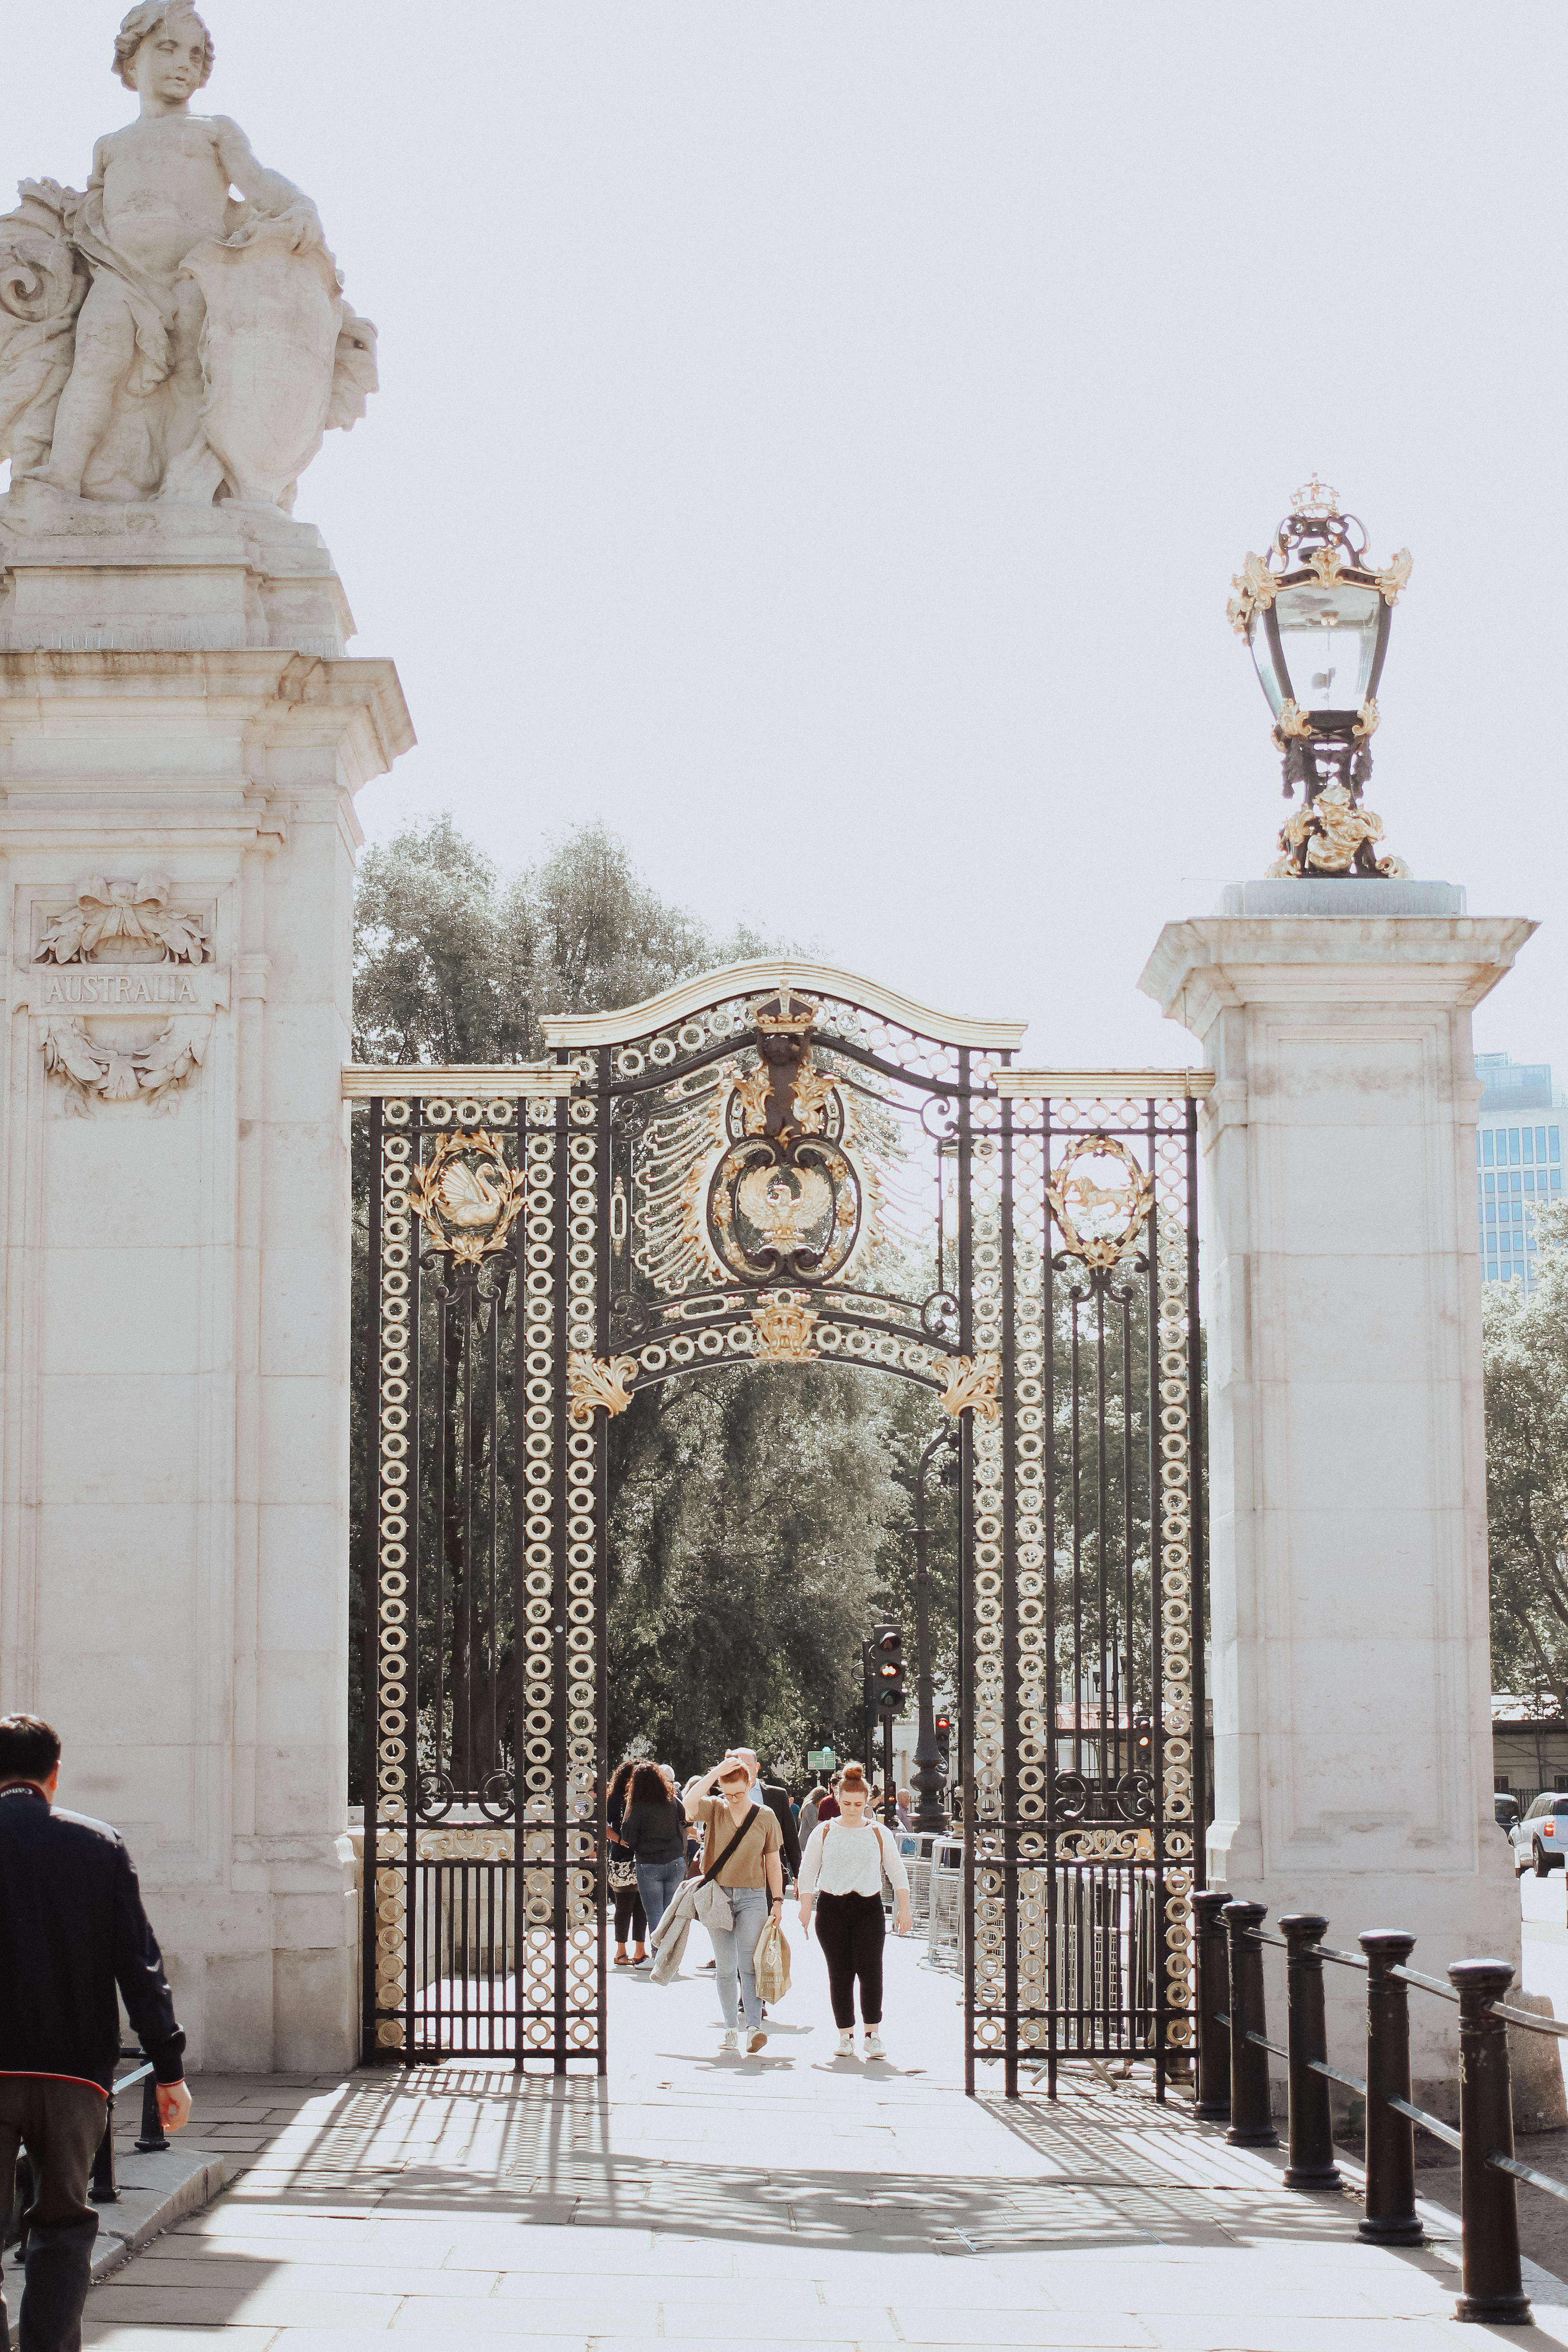 The Social Project, How To Make Friends, Social, Social Blogger, Social Media, Girl Boss, Entrepreneur, Creative, Collaboration, Barrie Wedding Planner, Barrie Social Media, Make Friends Club, London England, Travel, Travel Photography, Buckingham Palace